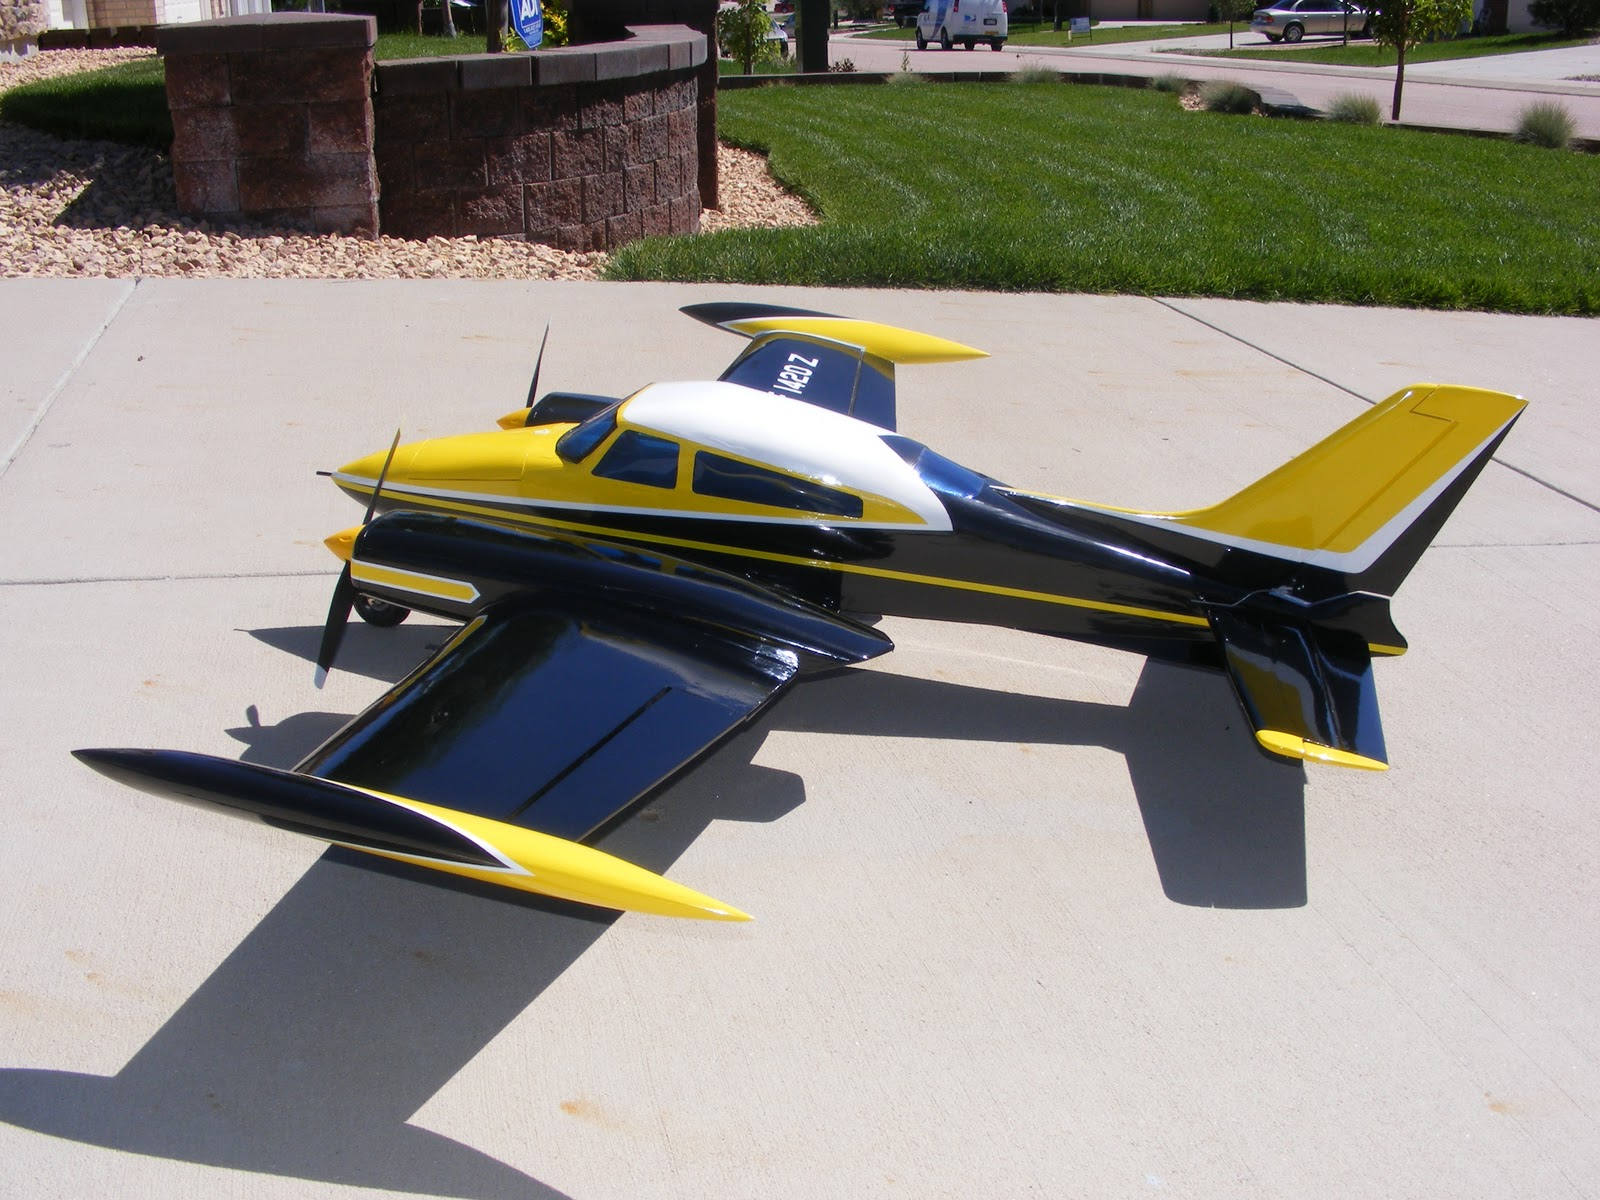 Crazzyflyer S Rc Planes Rc Plane Building Electric